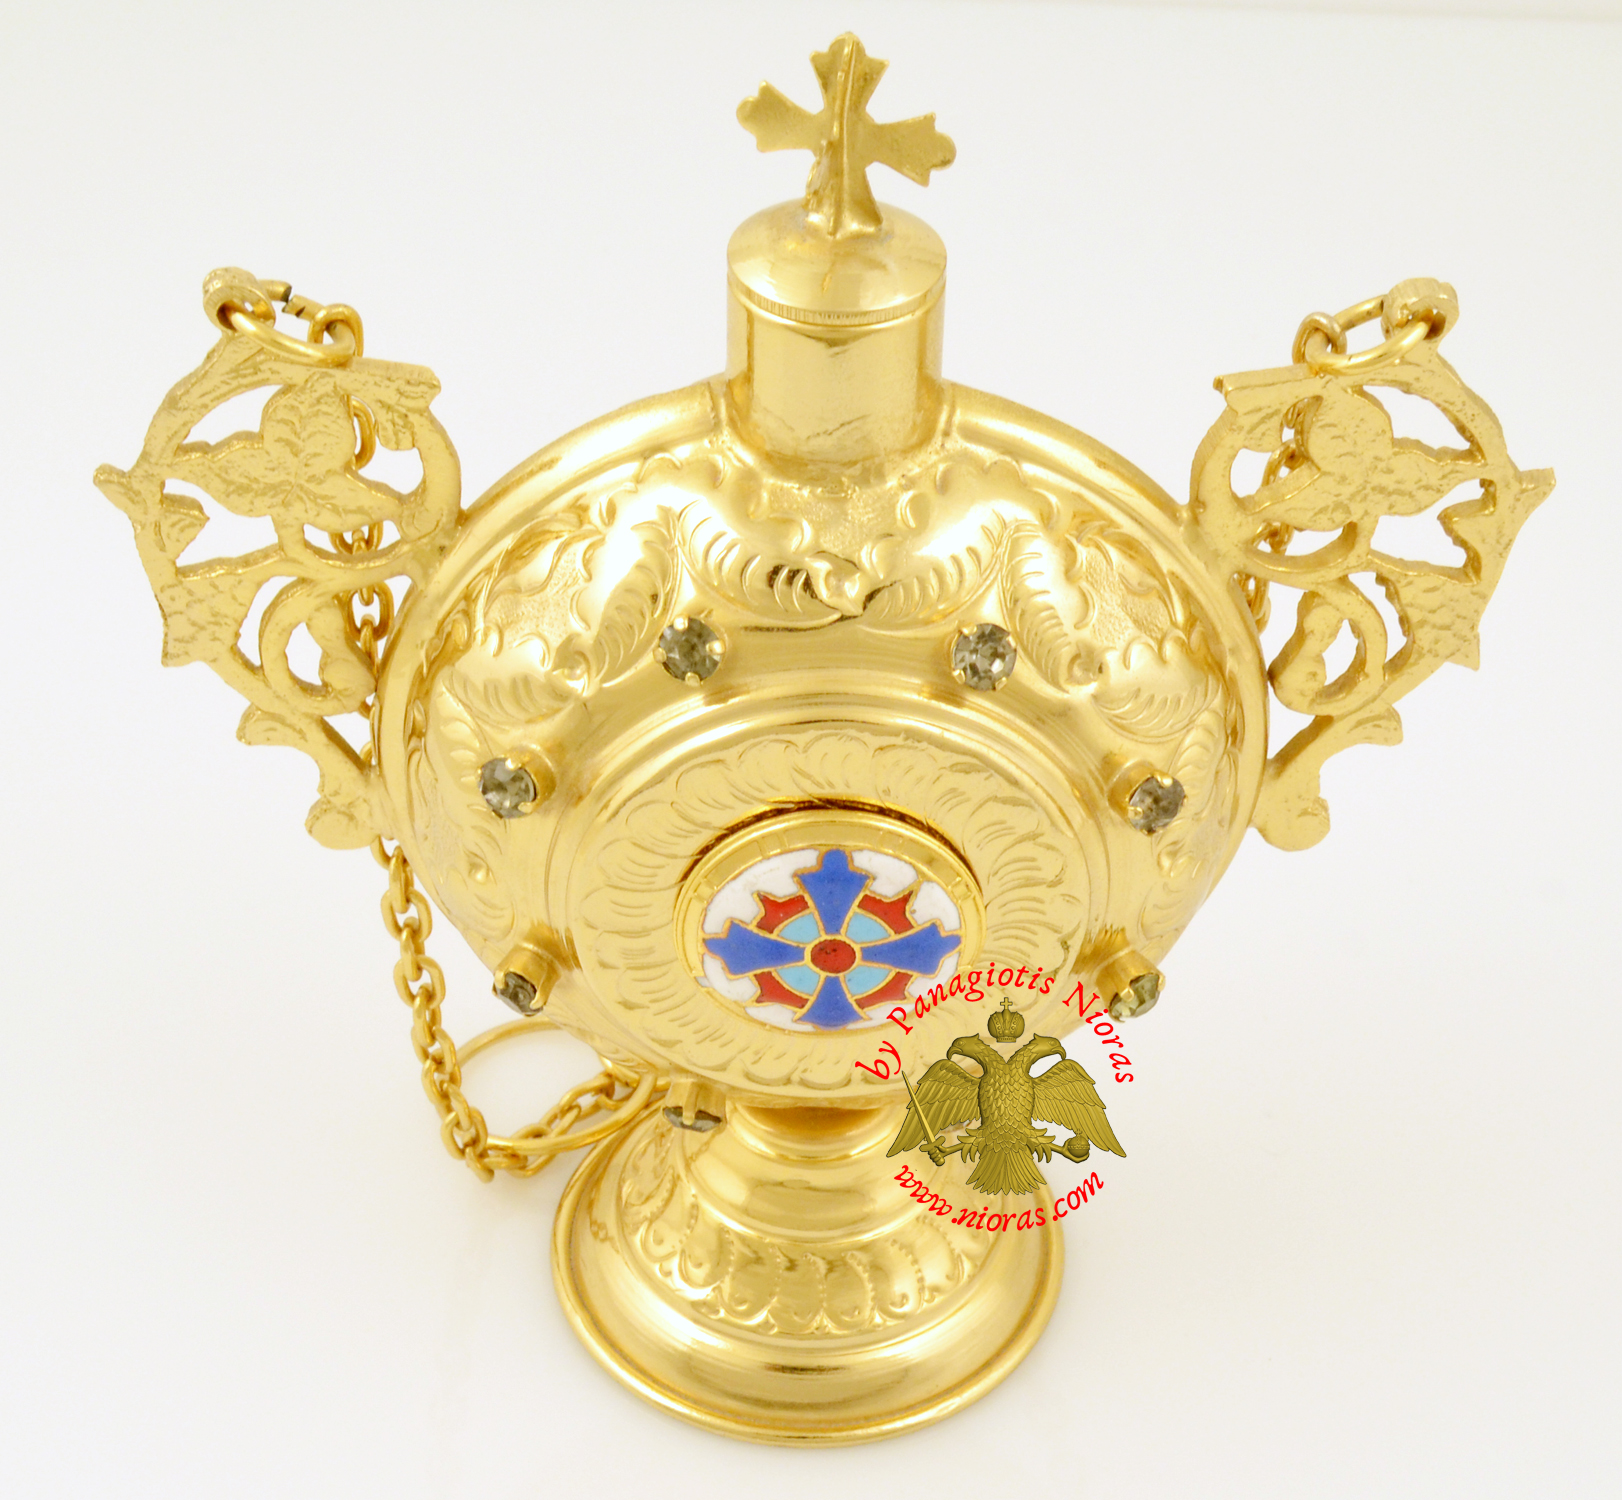 Anointing Holy Oil Round Bottle With Orthodox Cross Round Enamel Gold plated